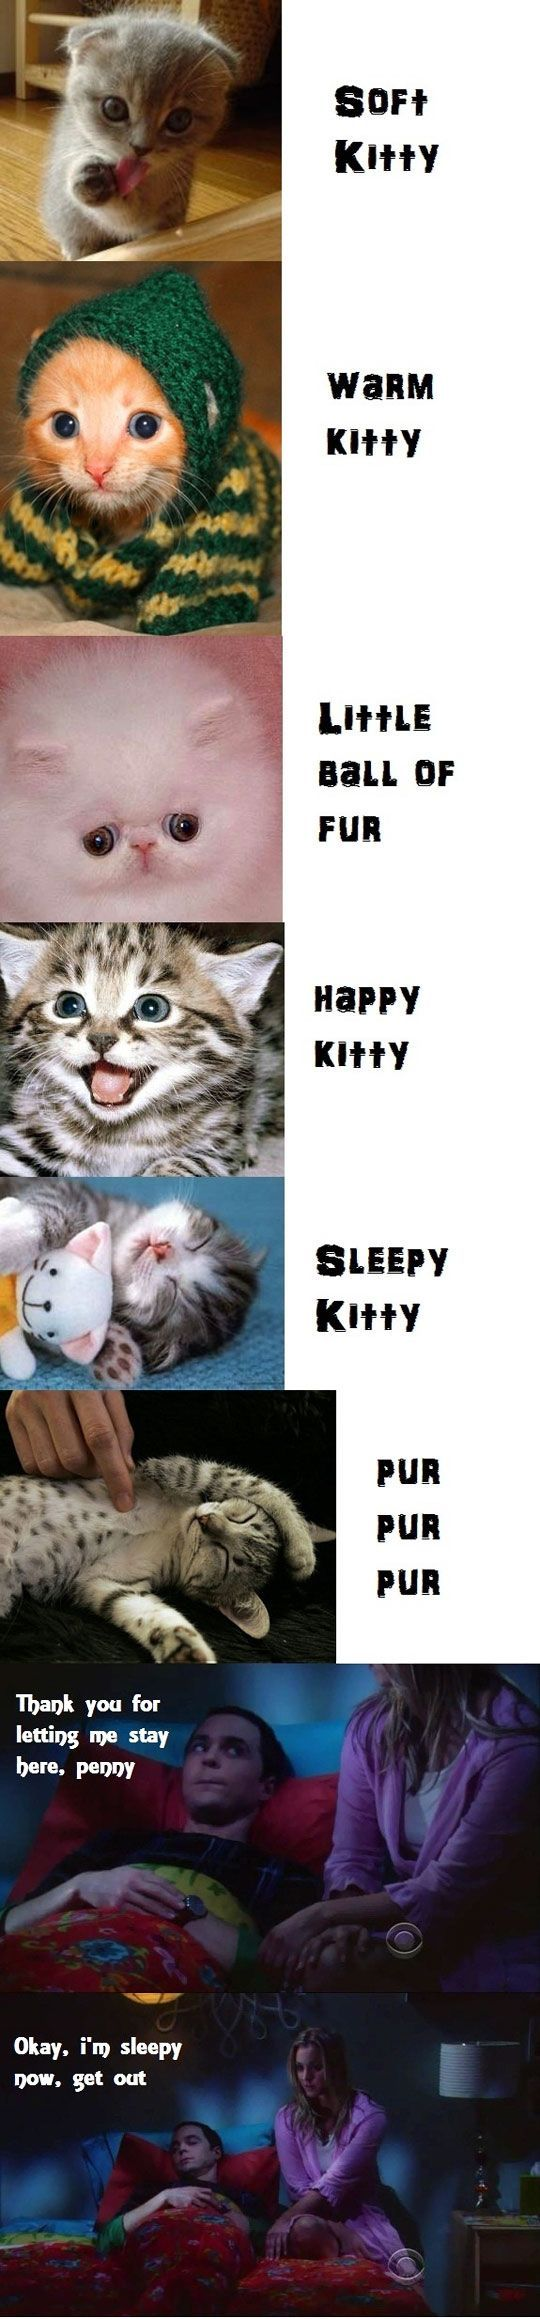 Soft kitty, warm kitty...